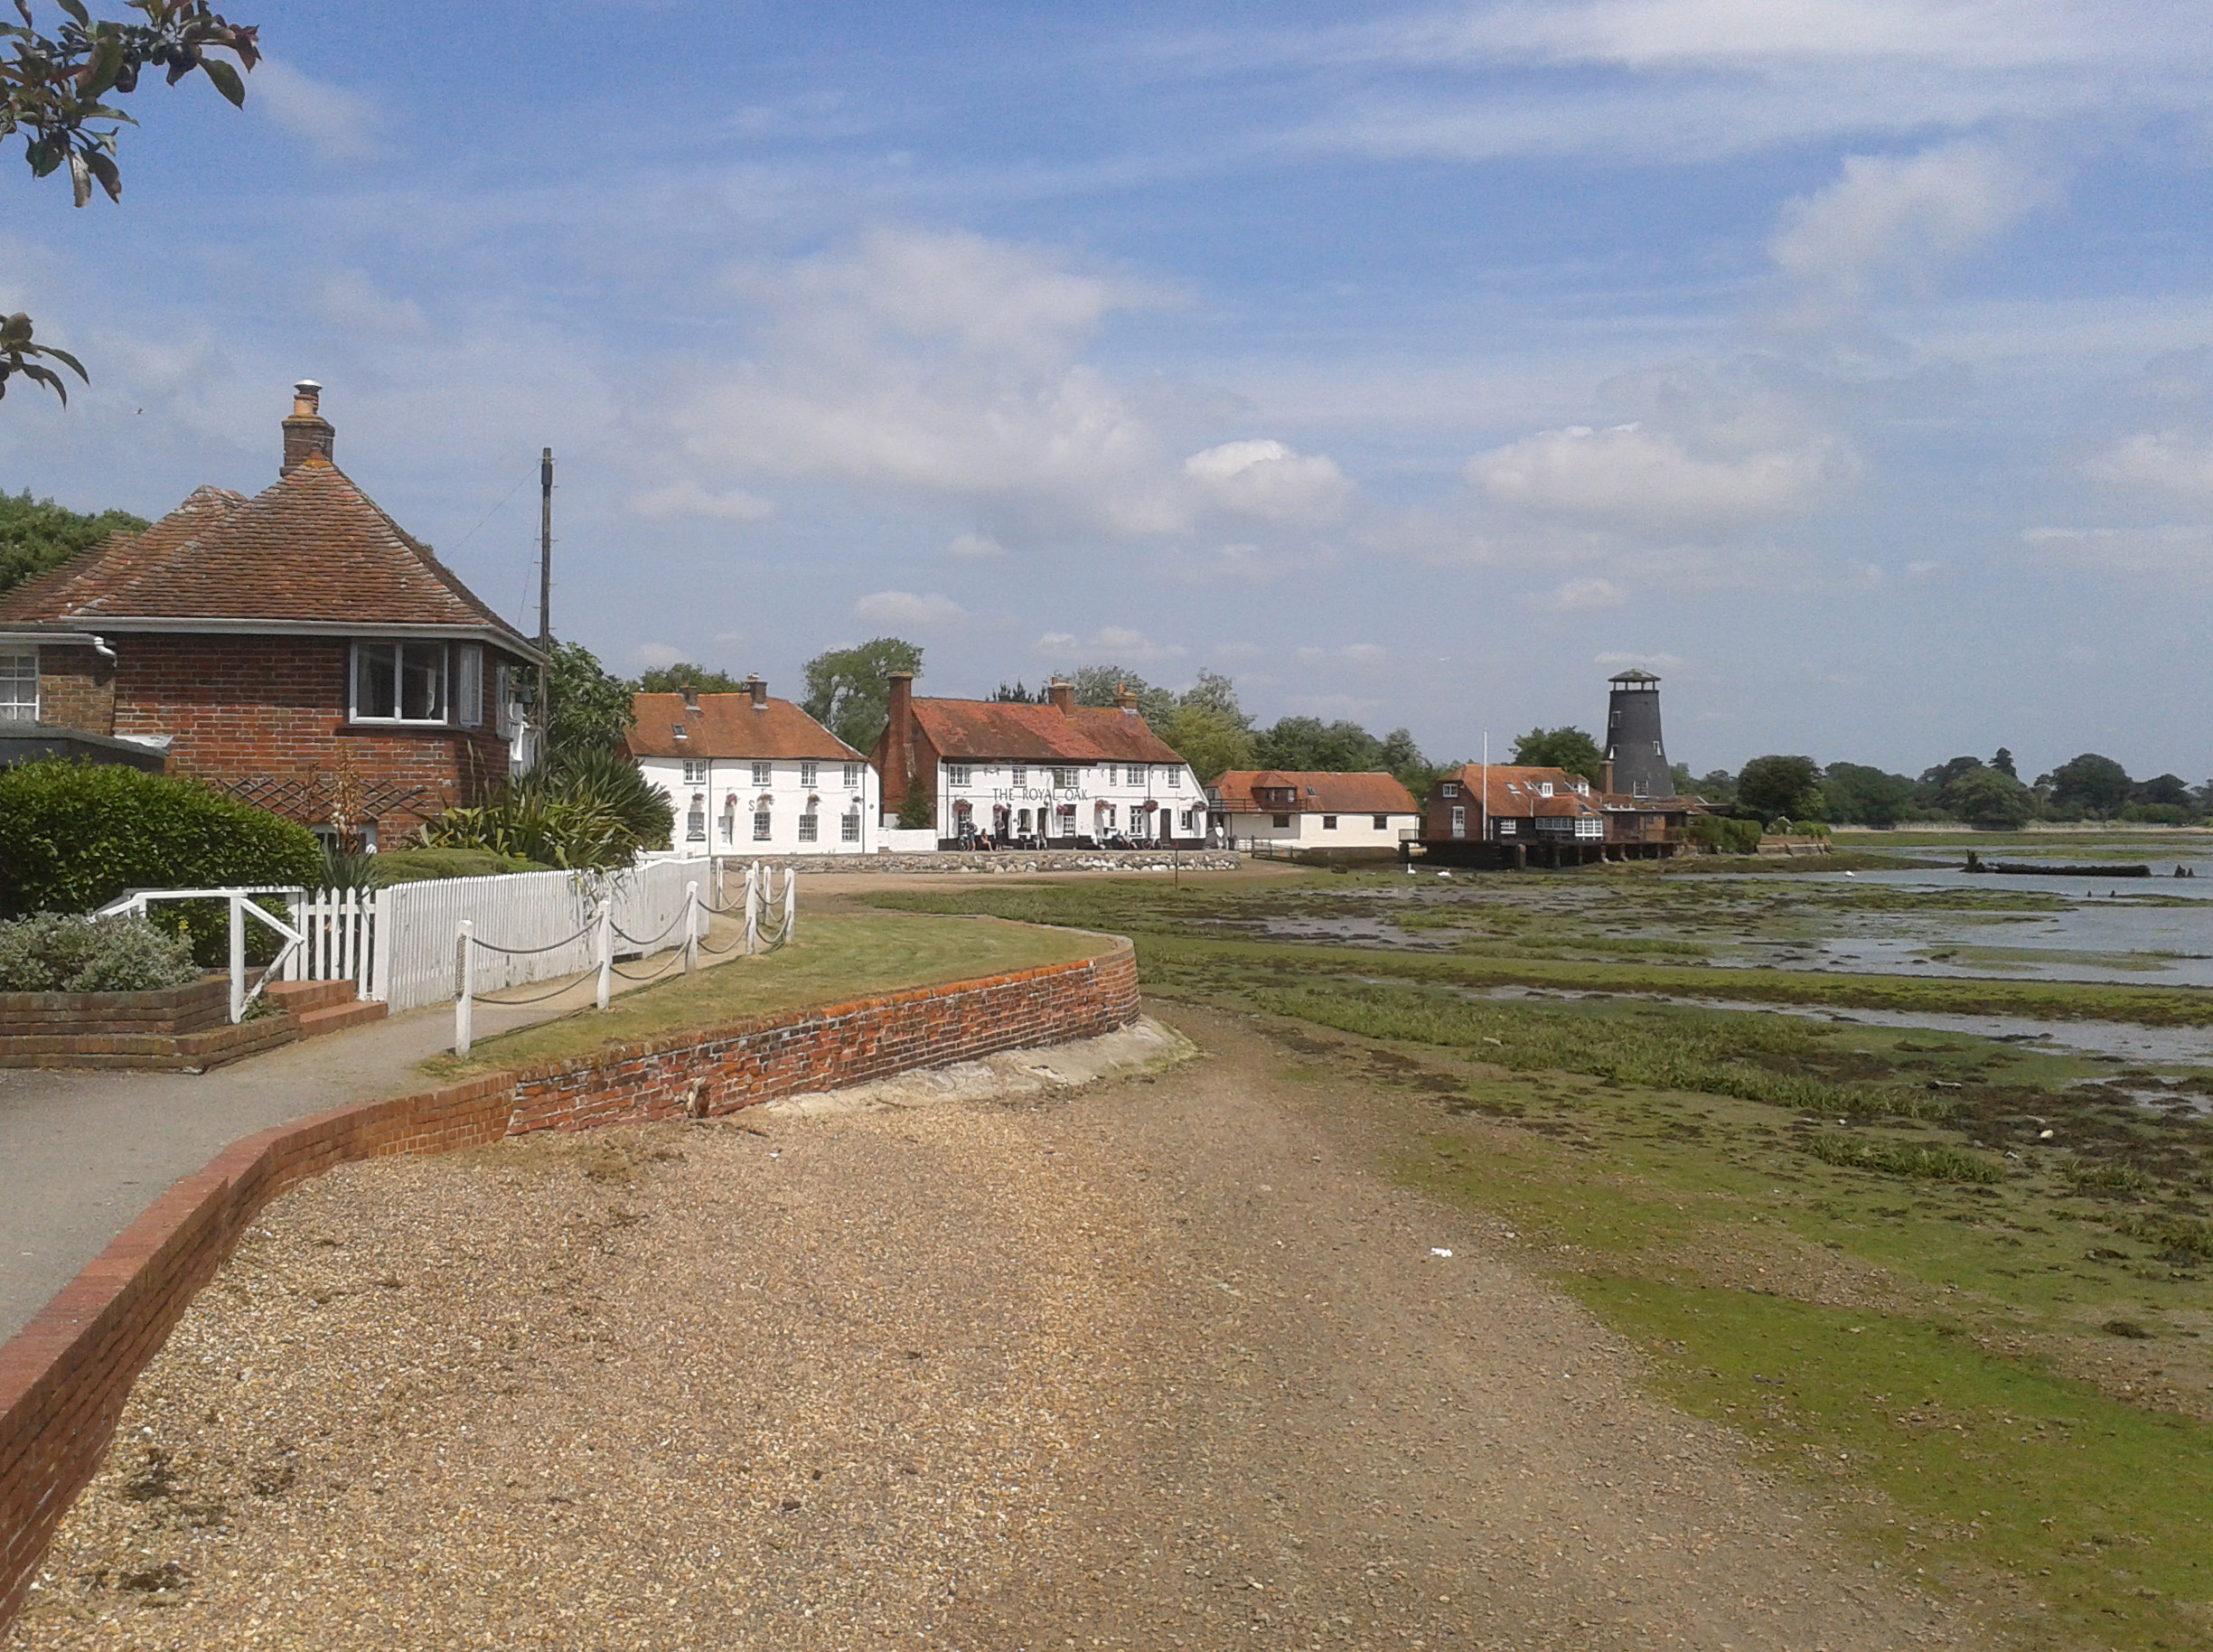 The Royal Oak, Langstone